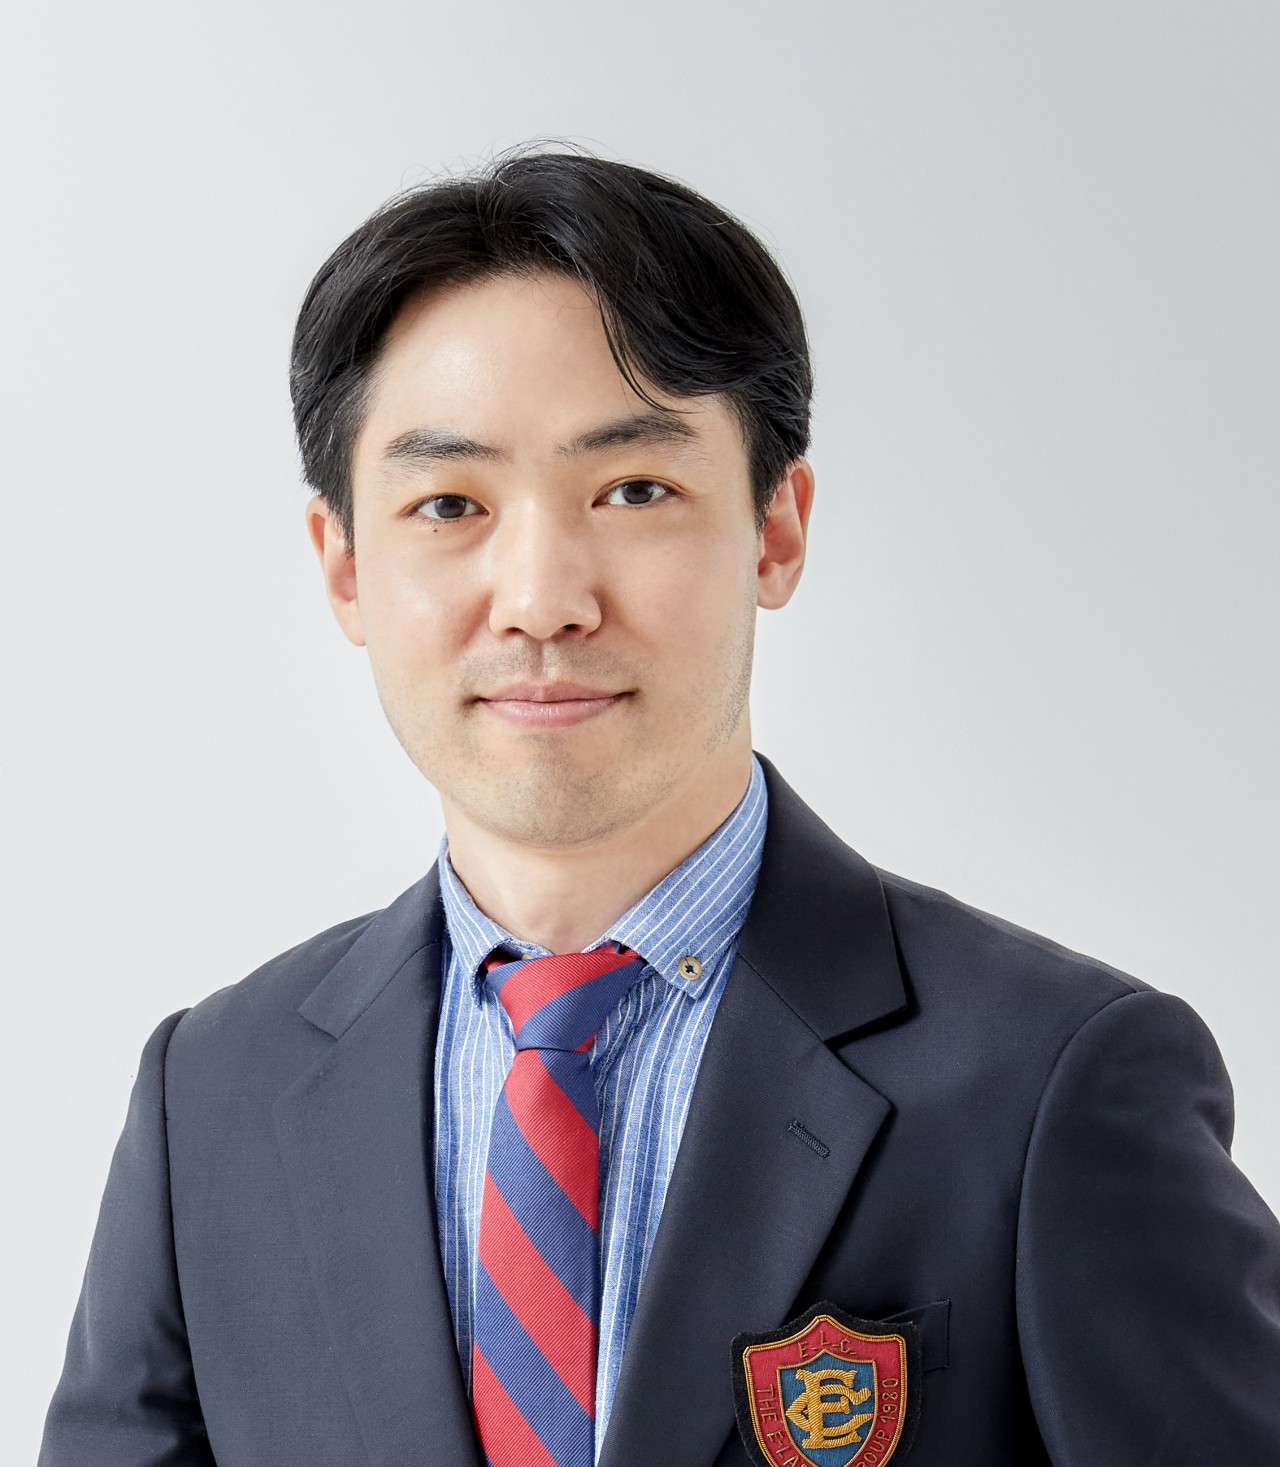 An Young-hun has been appointed to lead E-Land Retail. (E-Land Group)